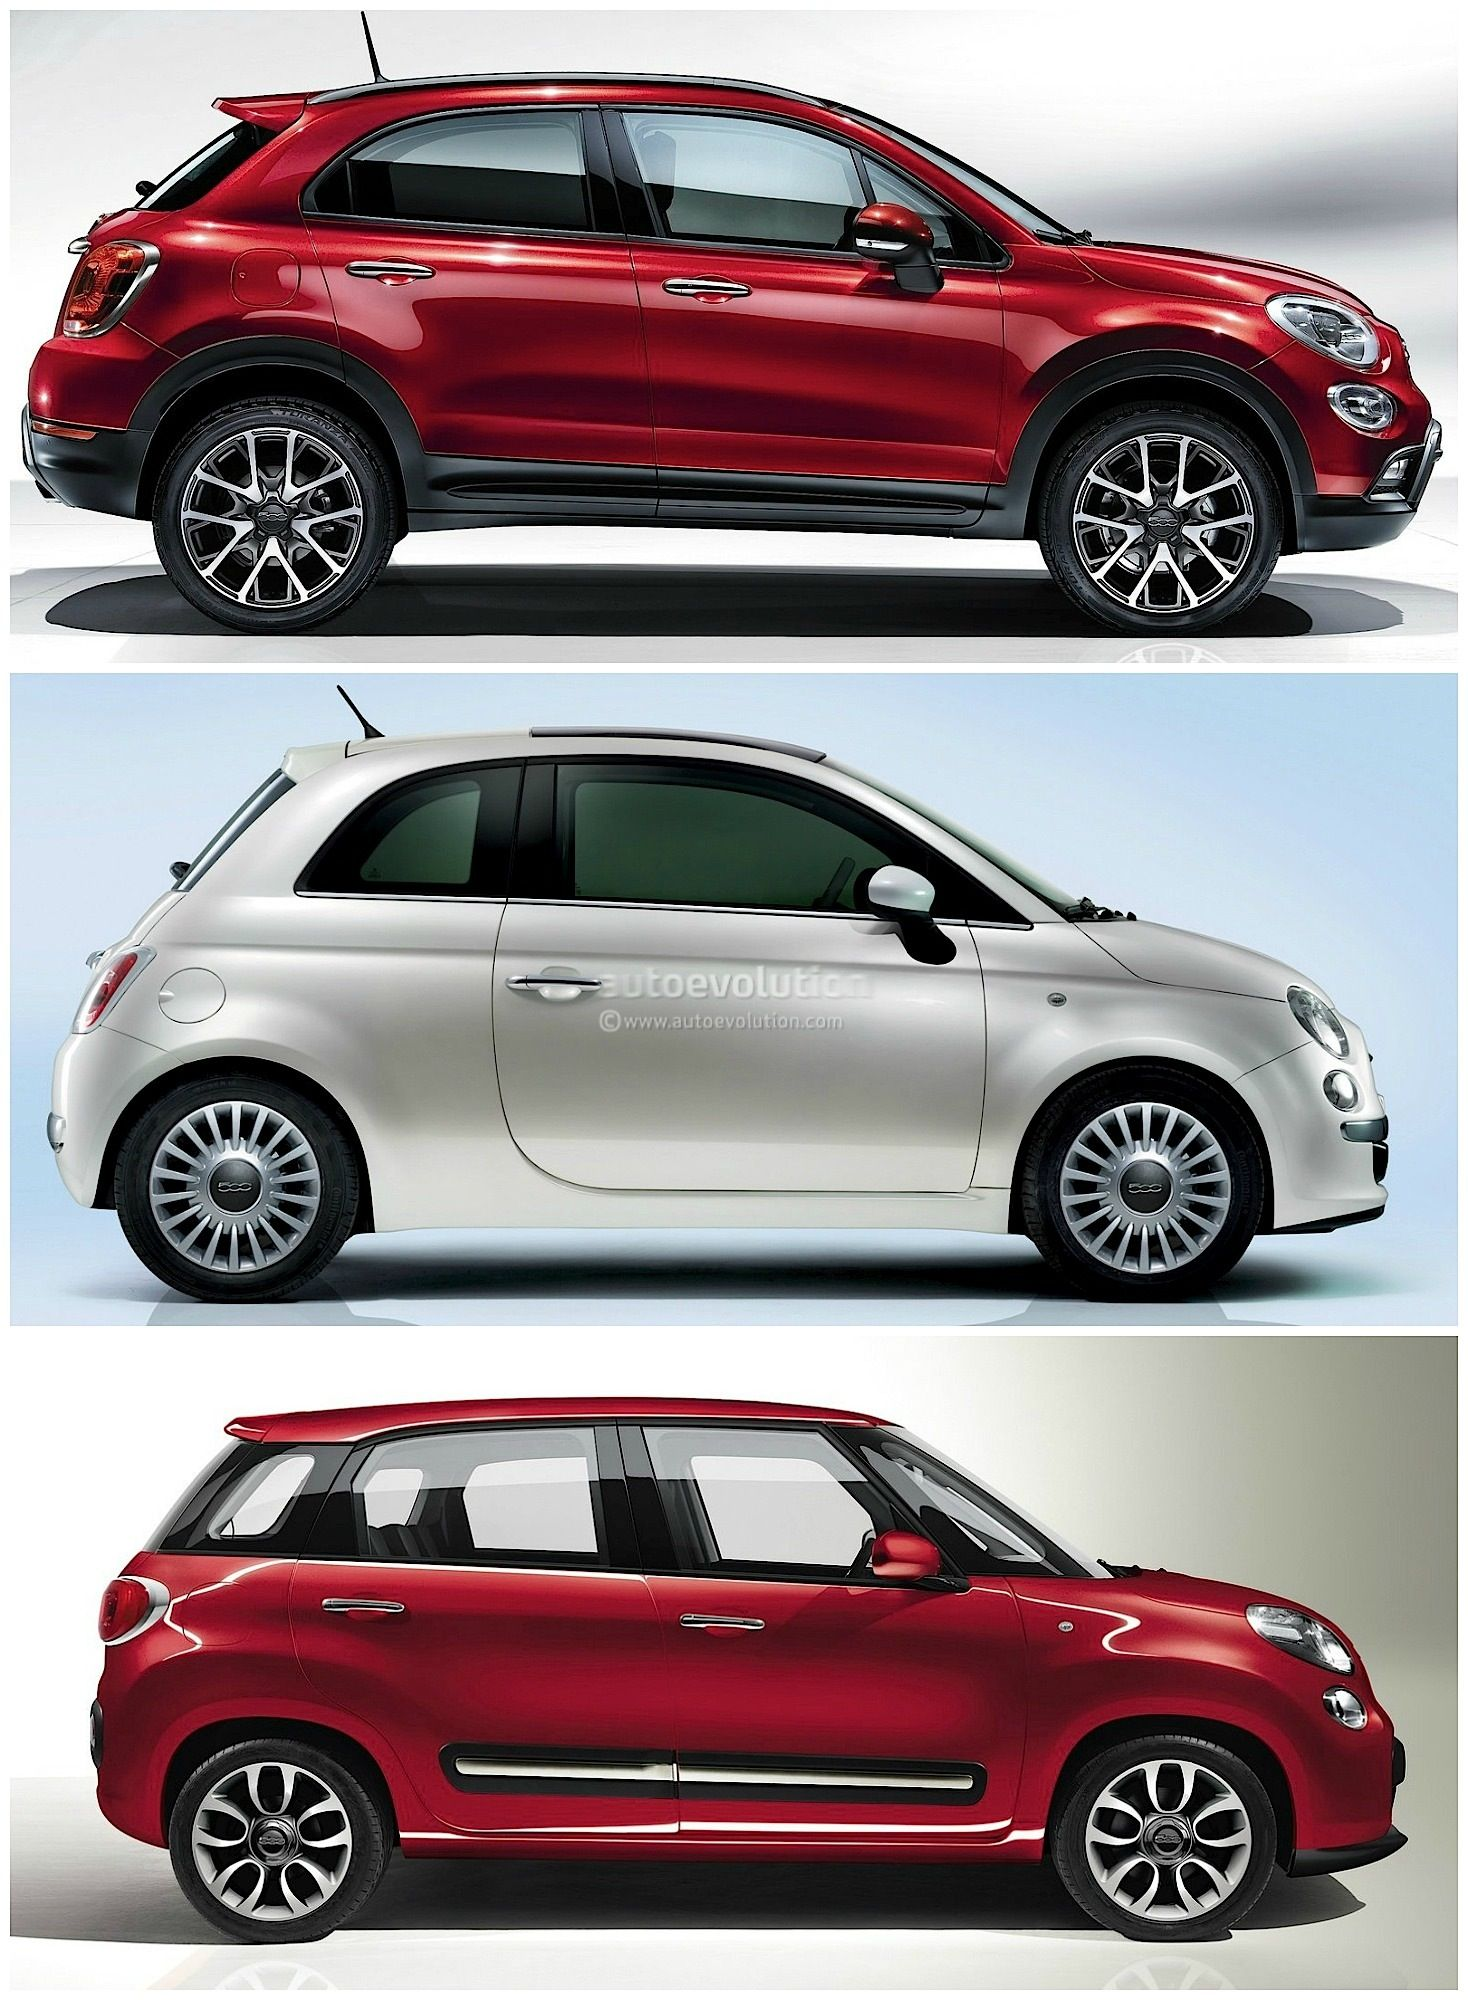 Fiat 500x Vs 500l Vs 500 Italian Family Comparison 4 Jpg 1468